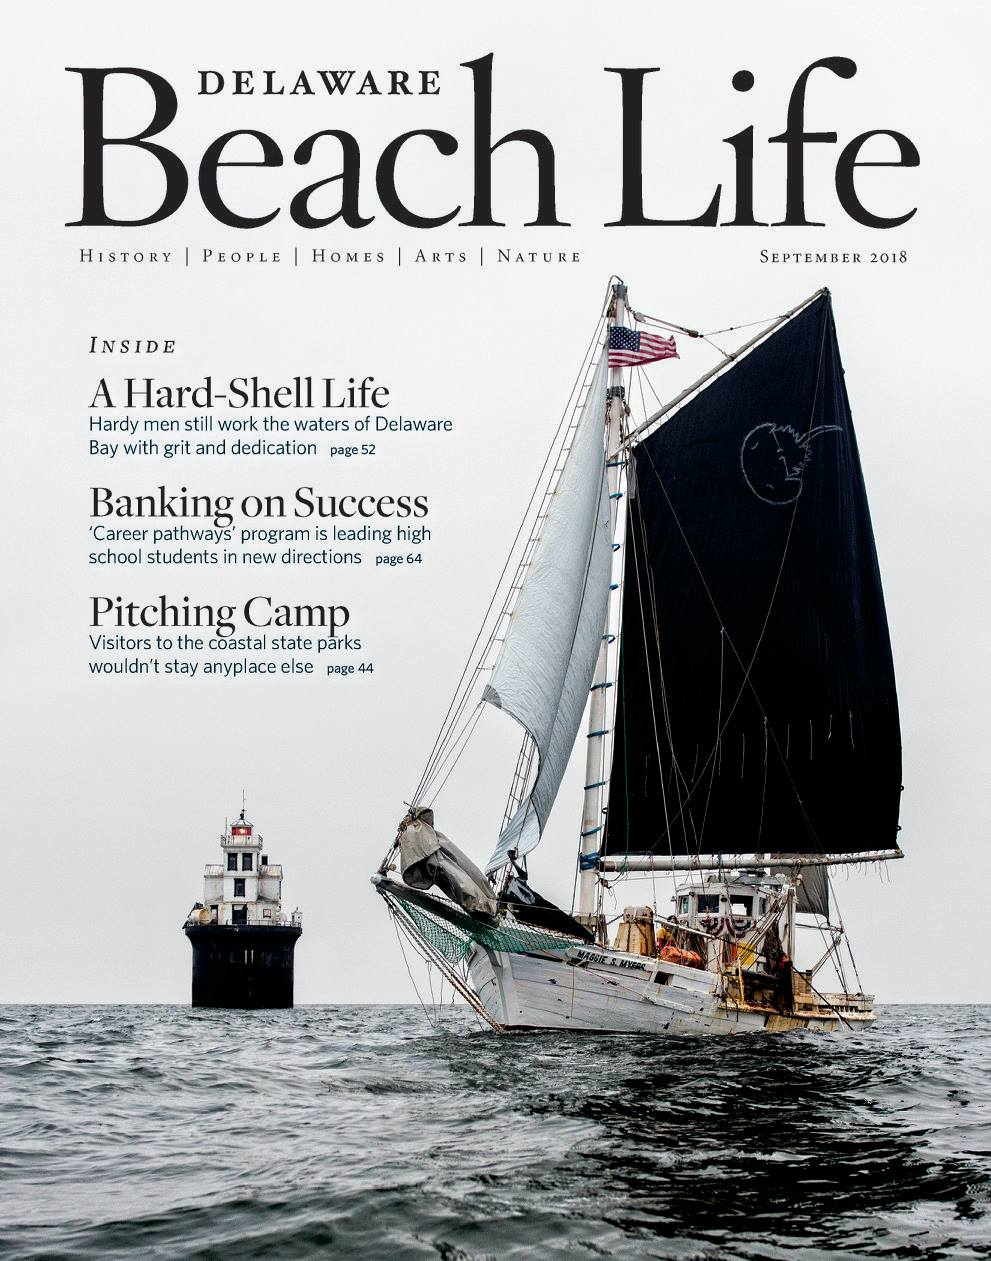 'A Hard-Shell Life' featured on the cover of the September 2018 issue of  Delaware Beach Life